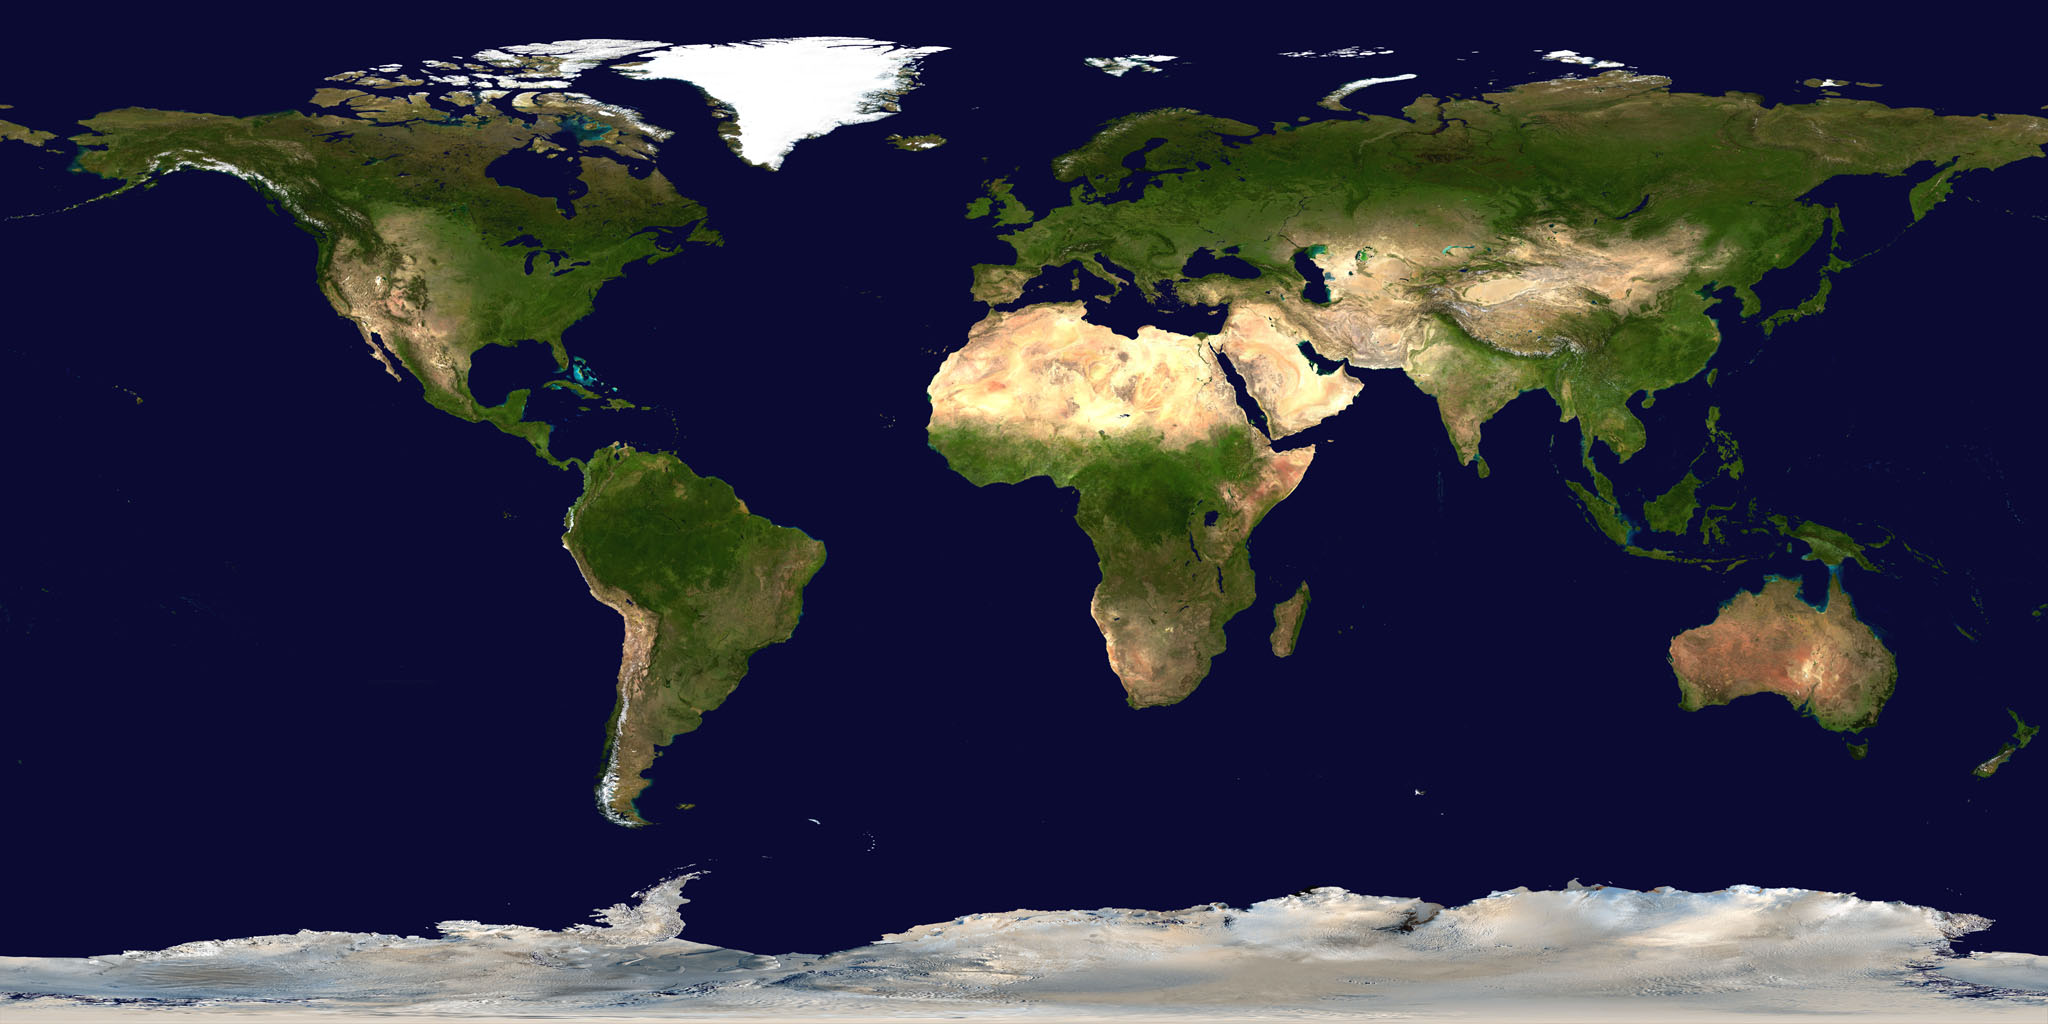 earth map nasa - photo #3